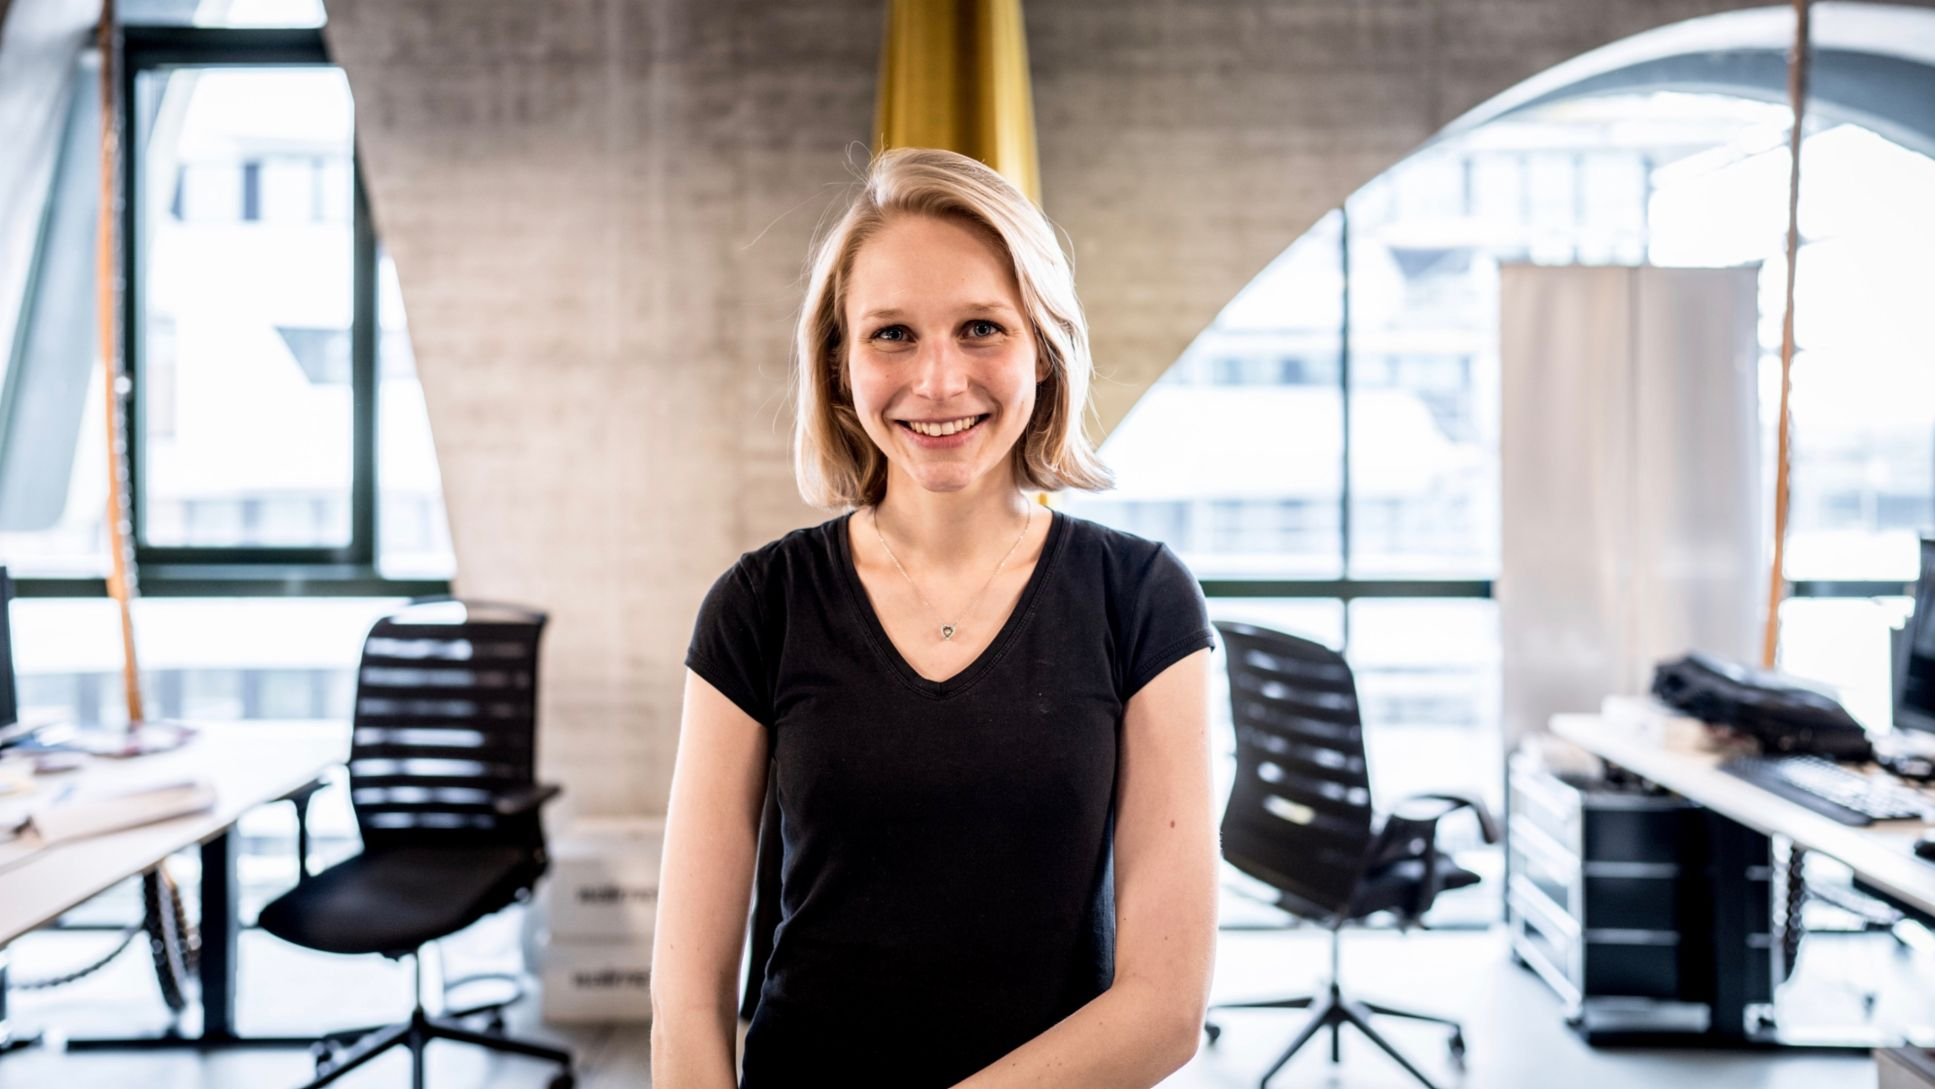 Sophie Schwandt, Data Scientist at Porsche Digital Lab, 2019, Porsche AG